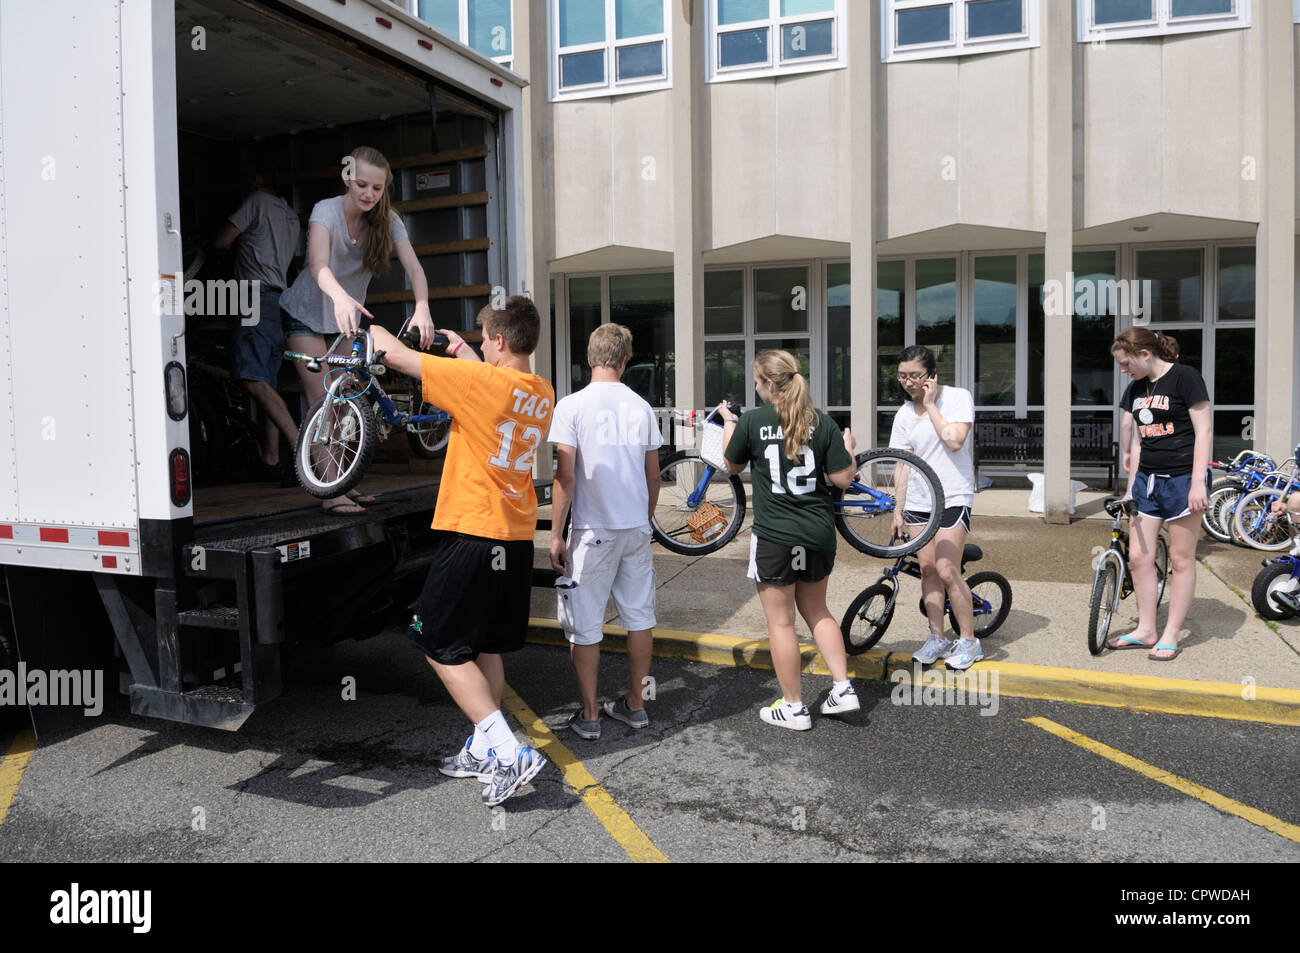 High school student volunteers doing community service loading donated used bikes onto truck to distribute to poor - Stock Image